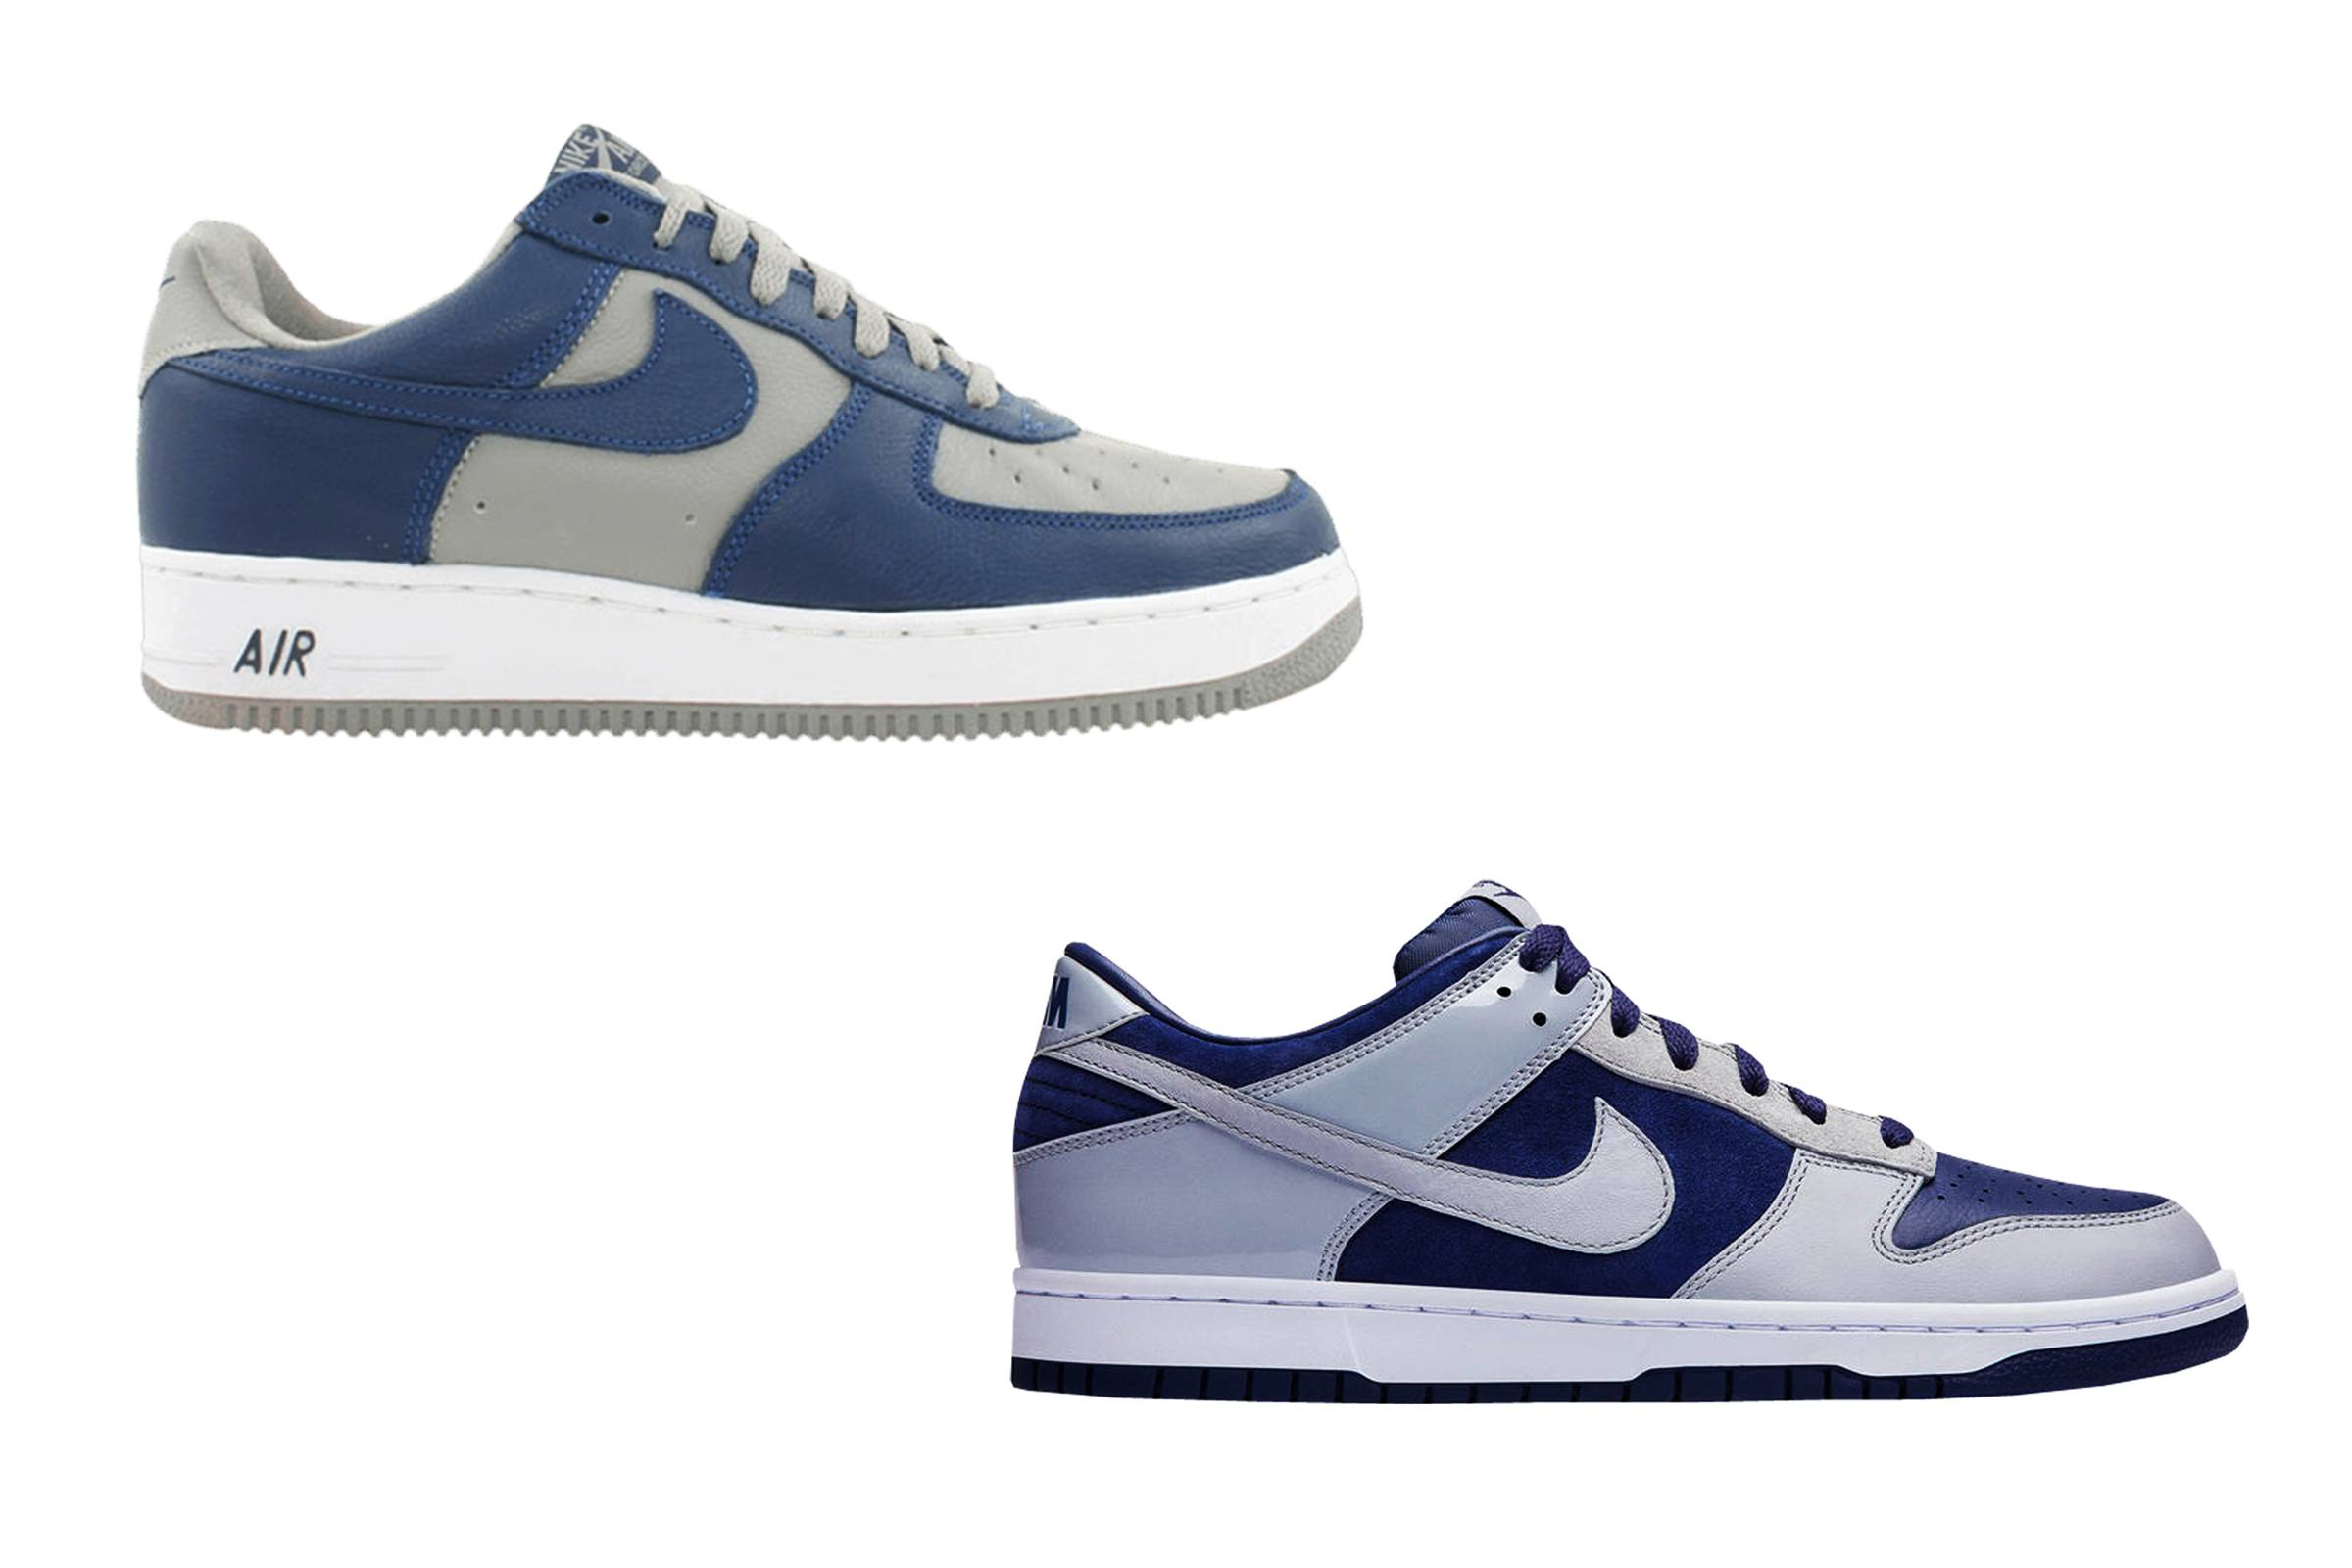 """atmos x Nike Air Force 1 """"Atmos"""" and Dunk Low """"Atmos Mismatched (Japan Pack)"""""""